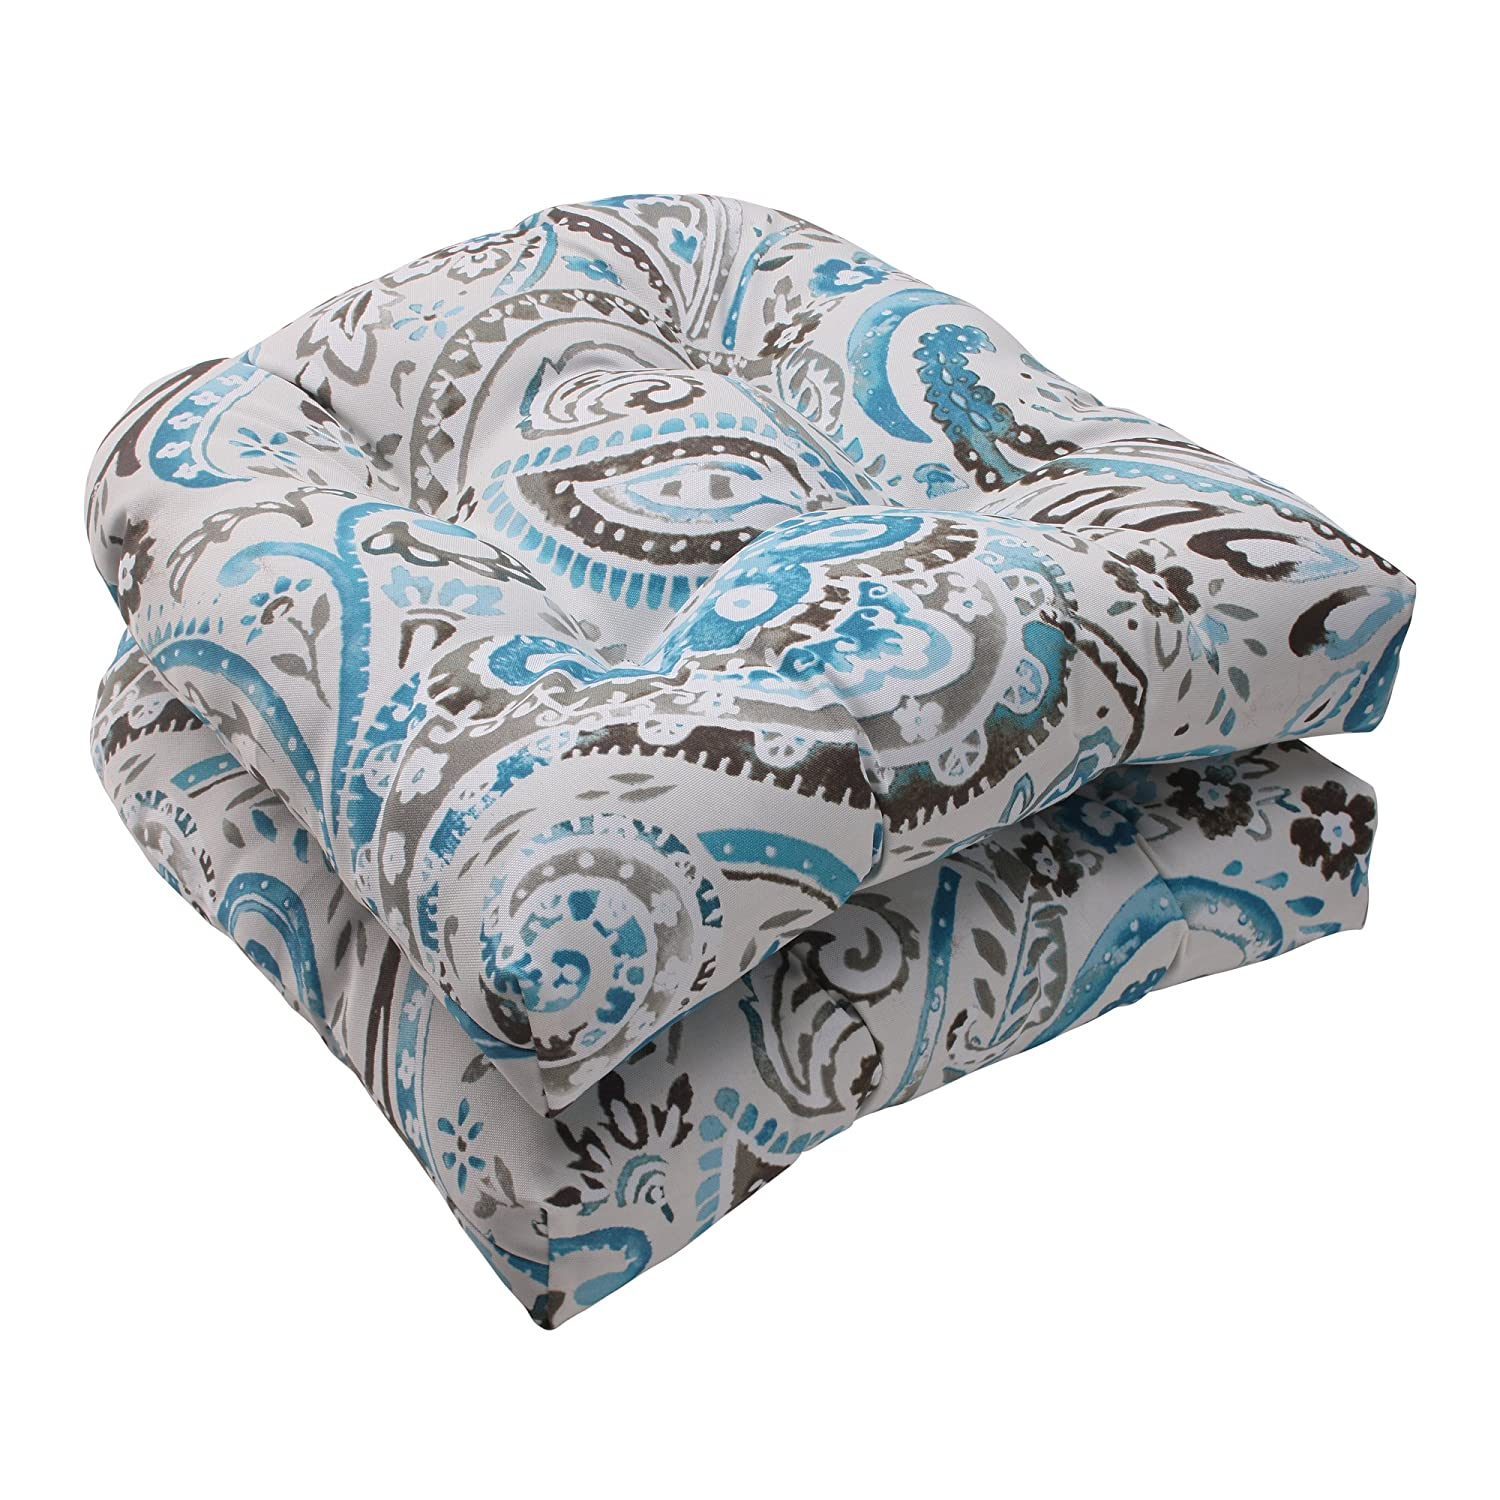 Gentil Amazon.com: Pillow Perfect Indoor/Outdoor Paisley Wicker Seat Cushion,  Tidepool, Set Of 2: Home U0026 Kitchen